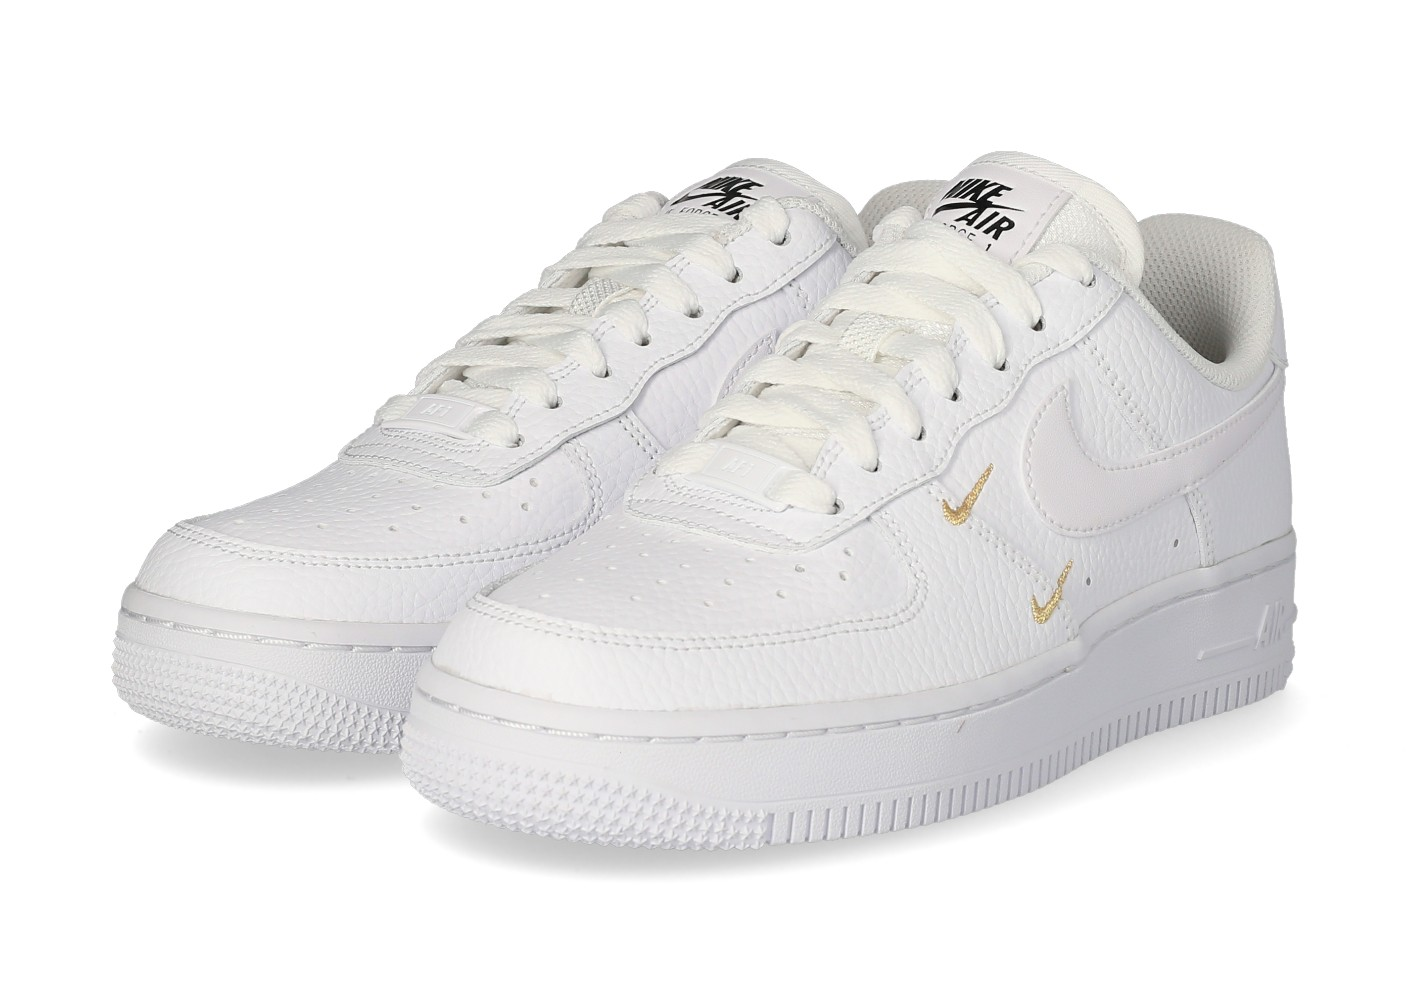 Nike Air Force 1'07 Essential Femme blanche et or - Chaussures ...